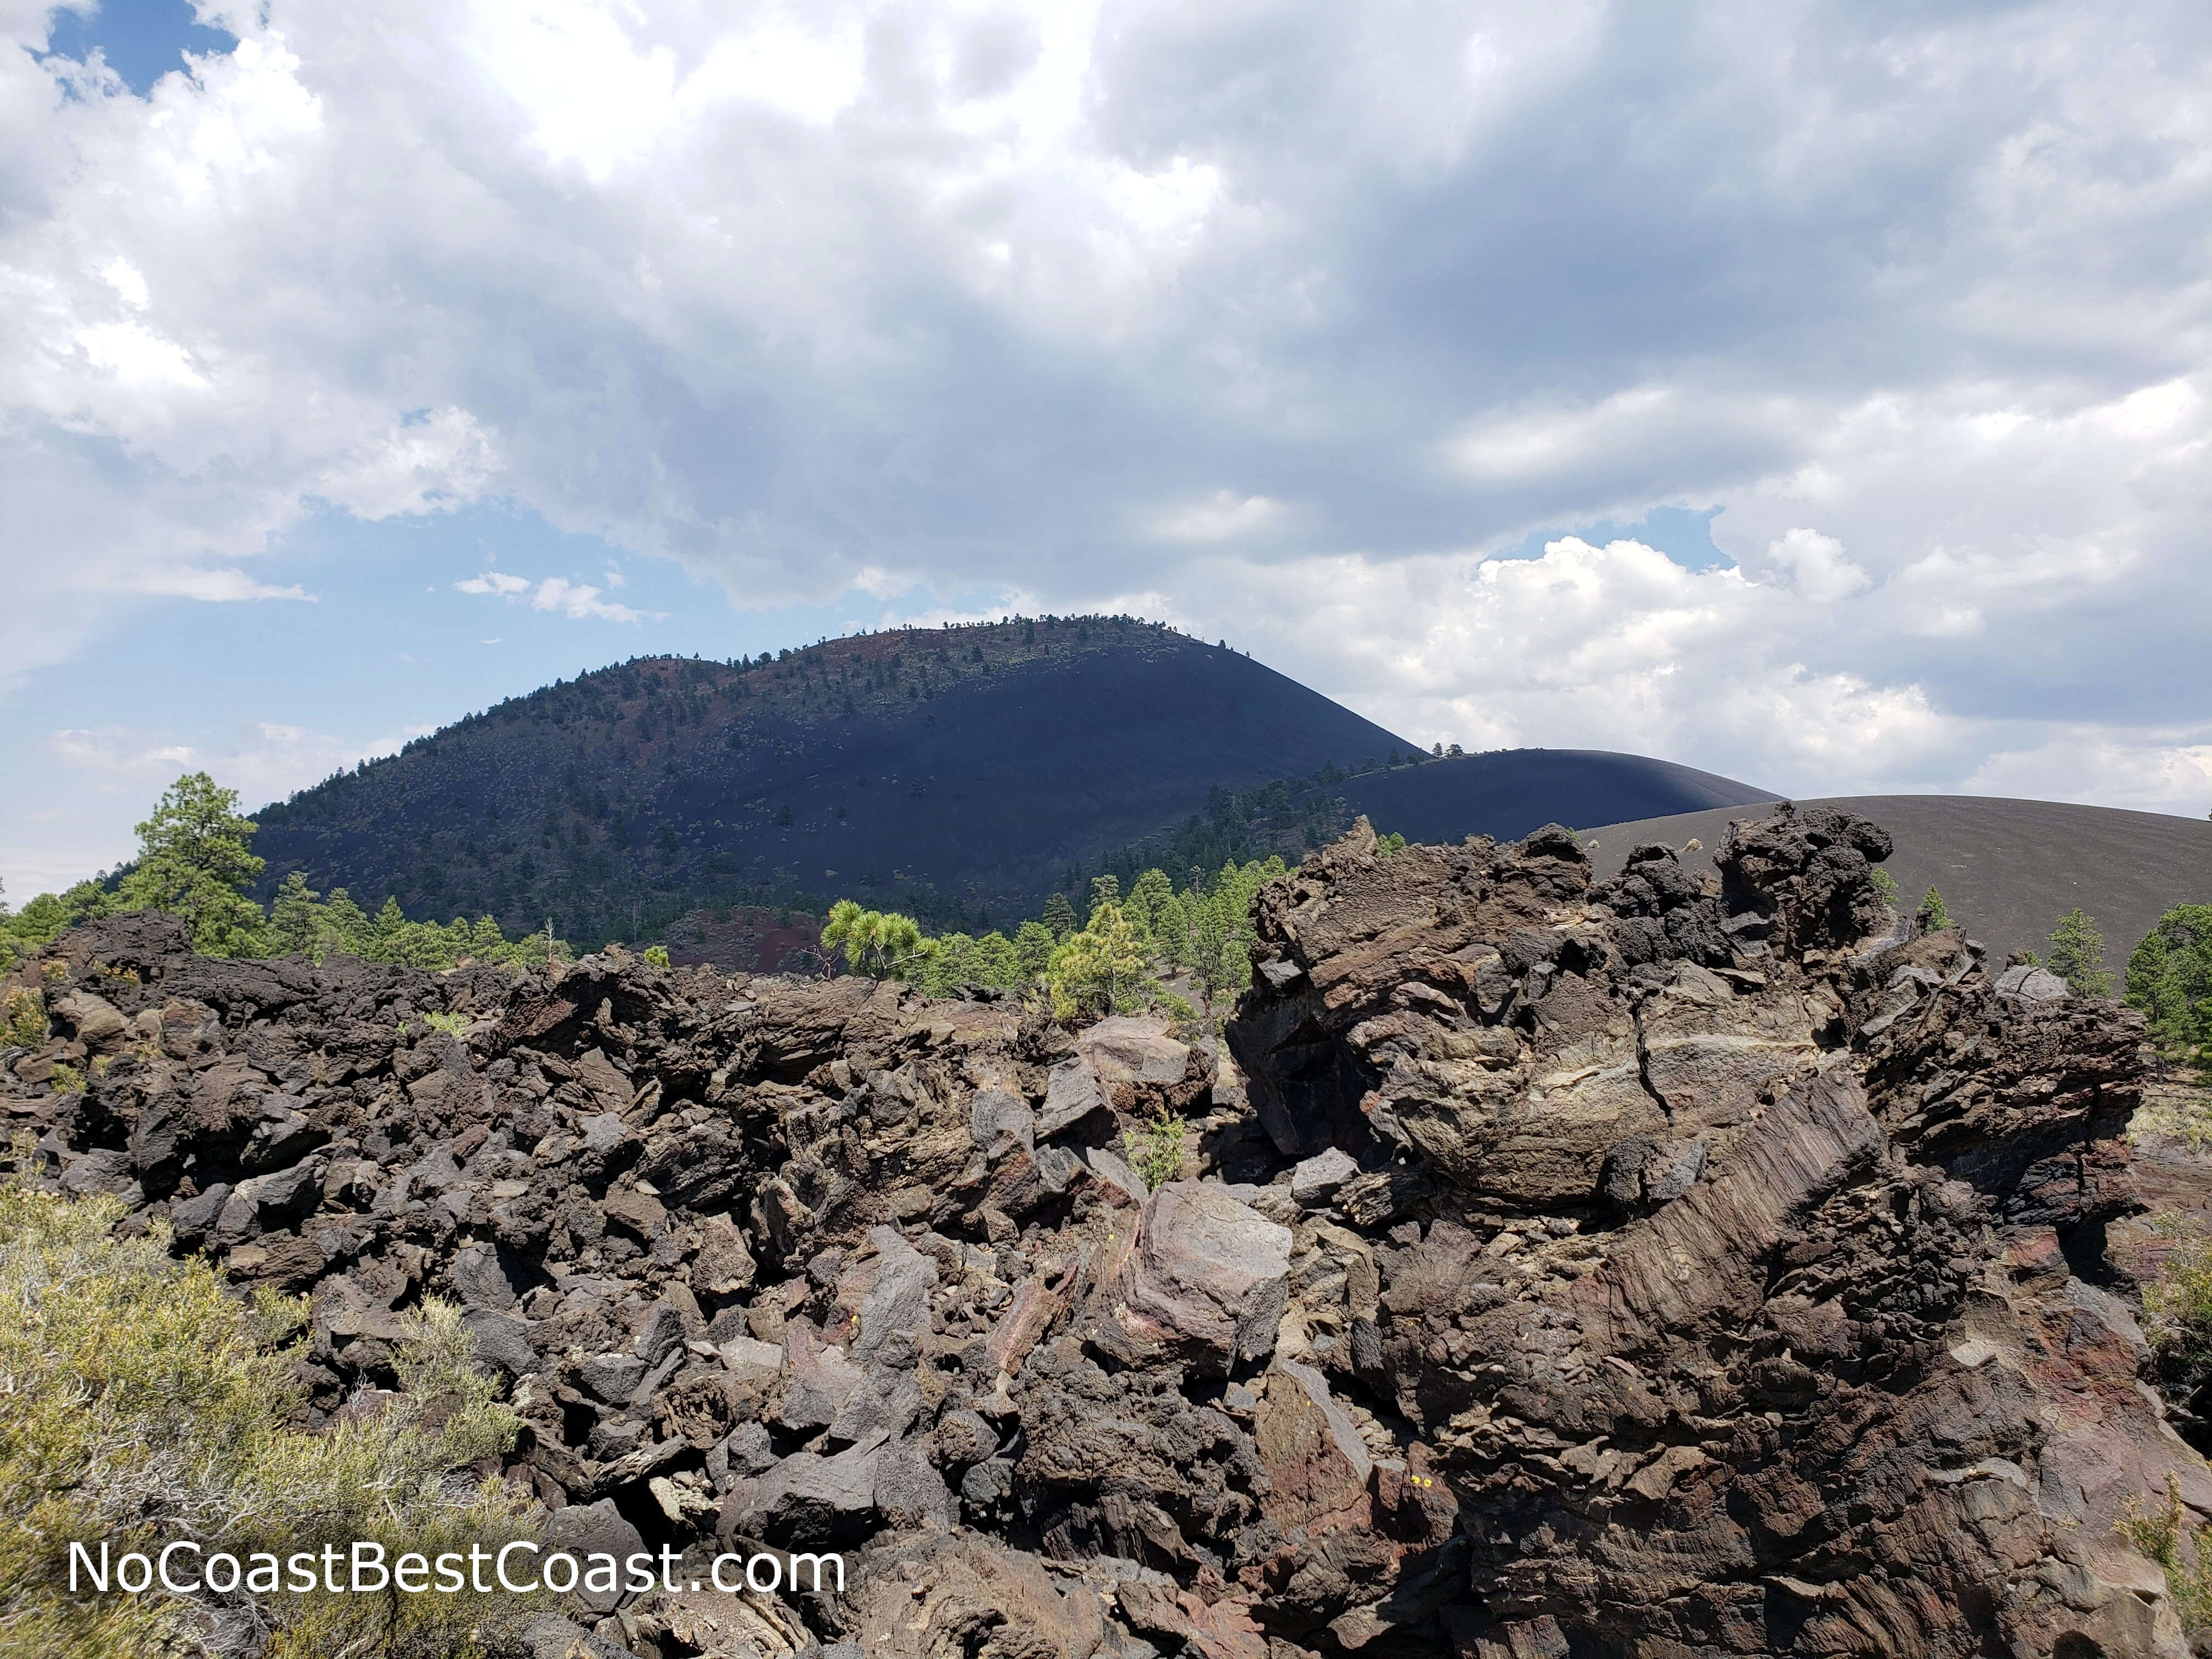 Basalt formations with Sunset Crater in the background